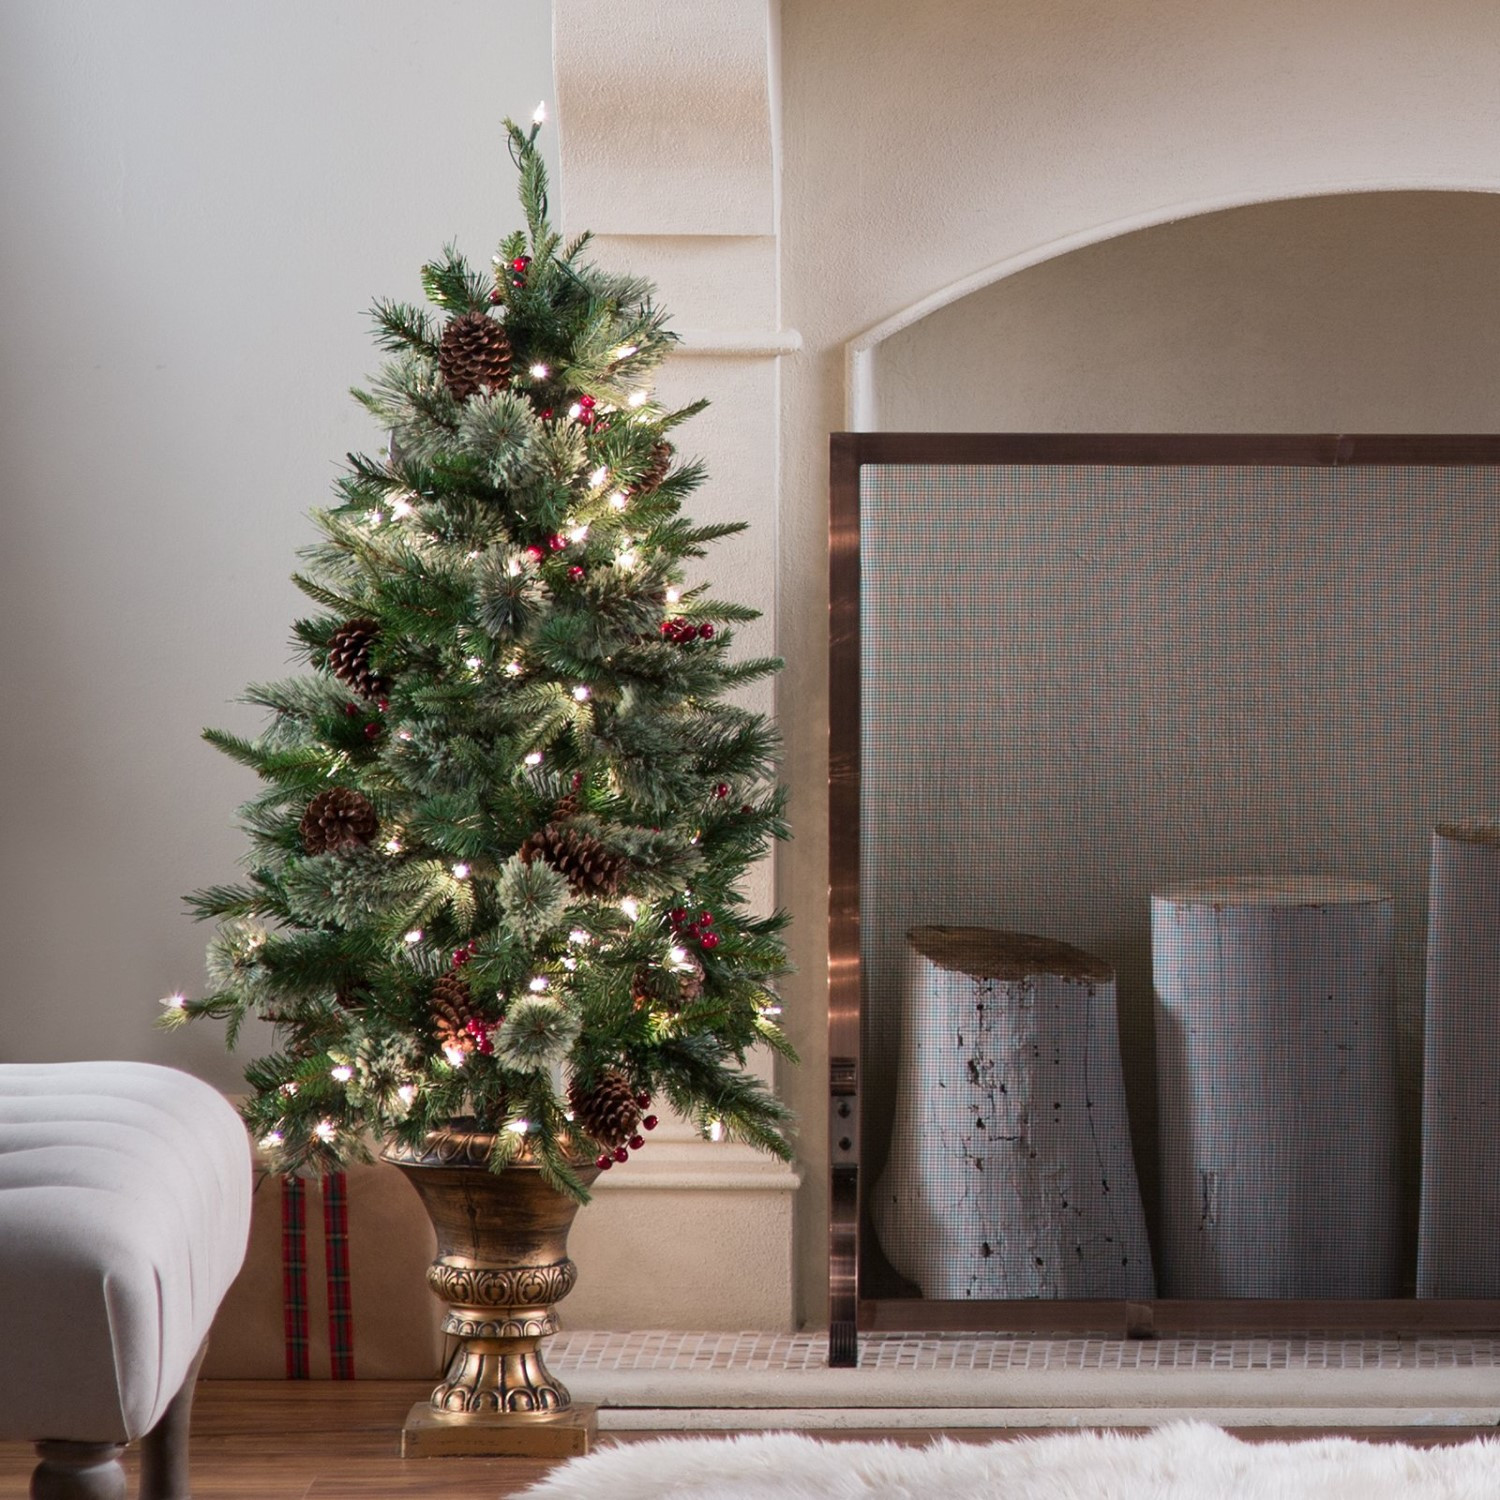 Best ideas about Entryway Christmas Tree . Save or Pin 4 ft Pre lit Feel Real Colonial Potted Entryway Christmas Now.